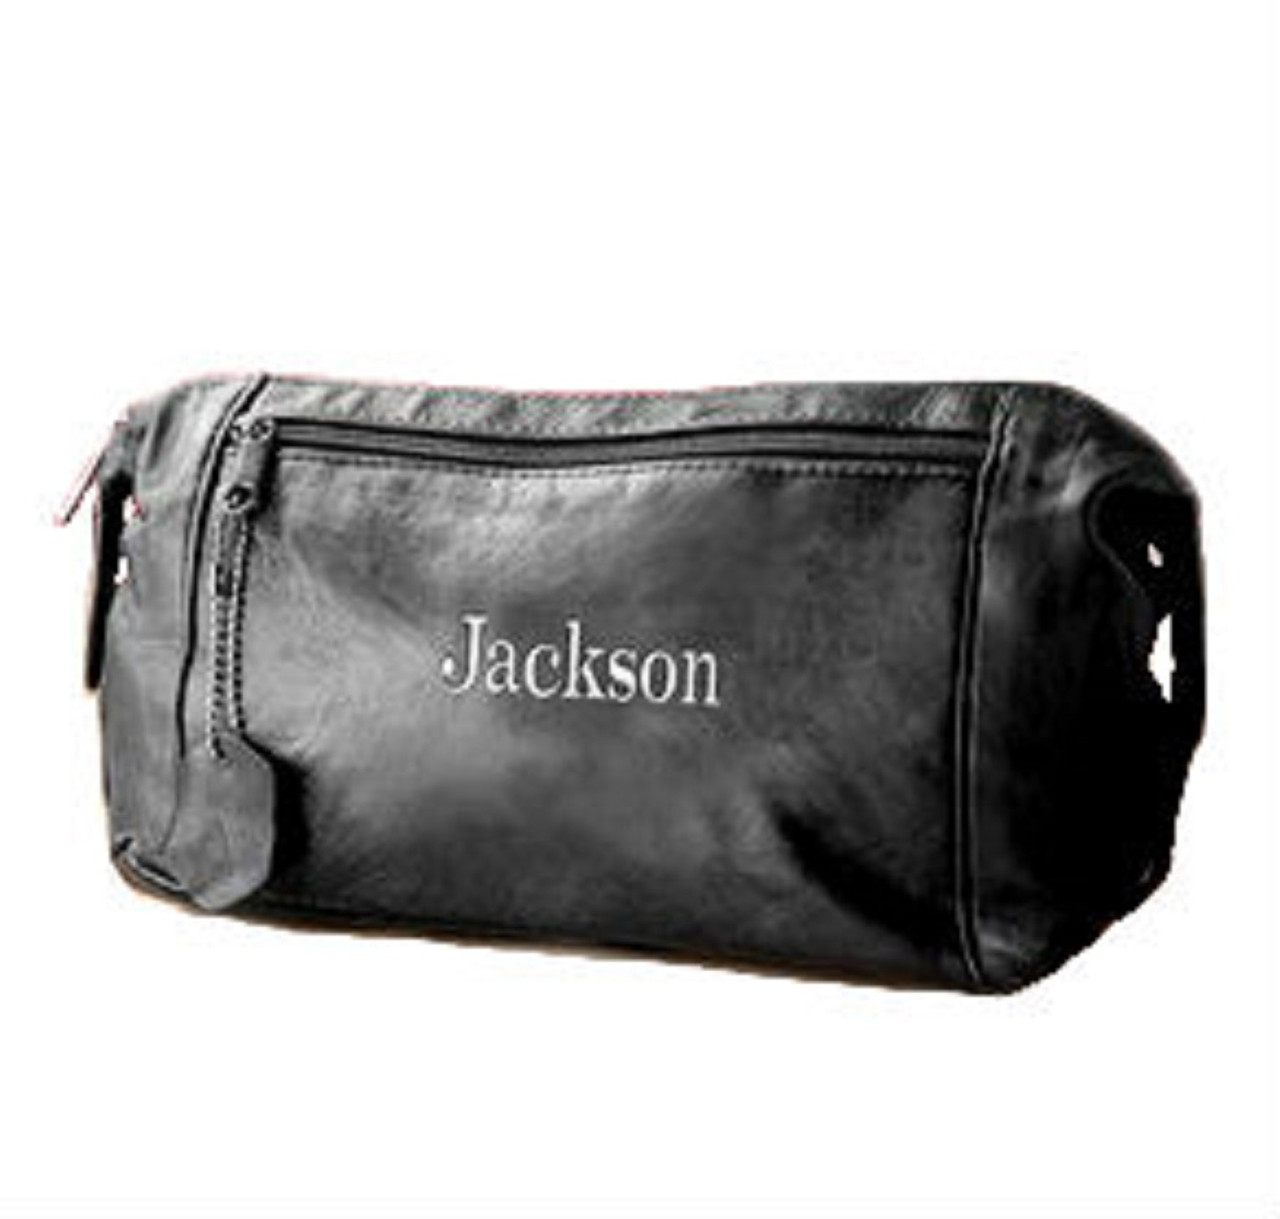 f9ab371ac161 Men s Personalized Leather Dopp Kit   Toiletry Bag